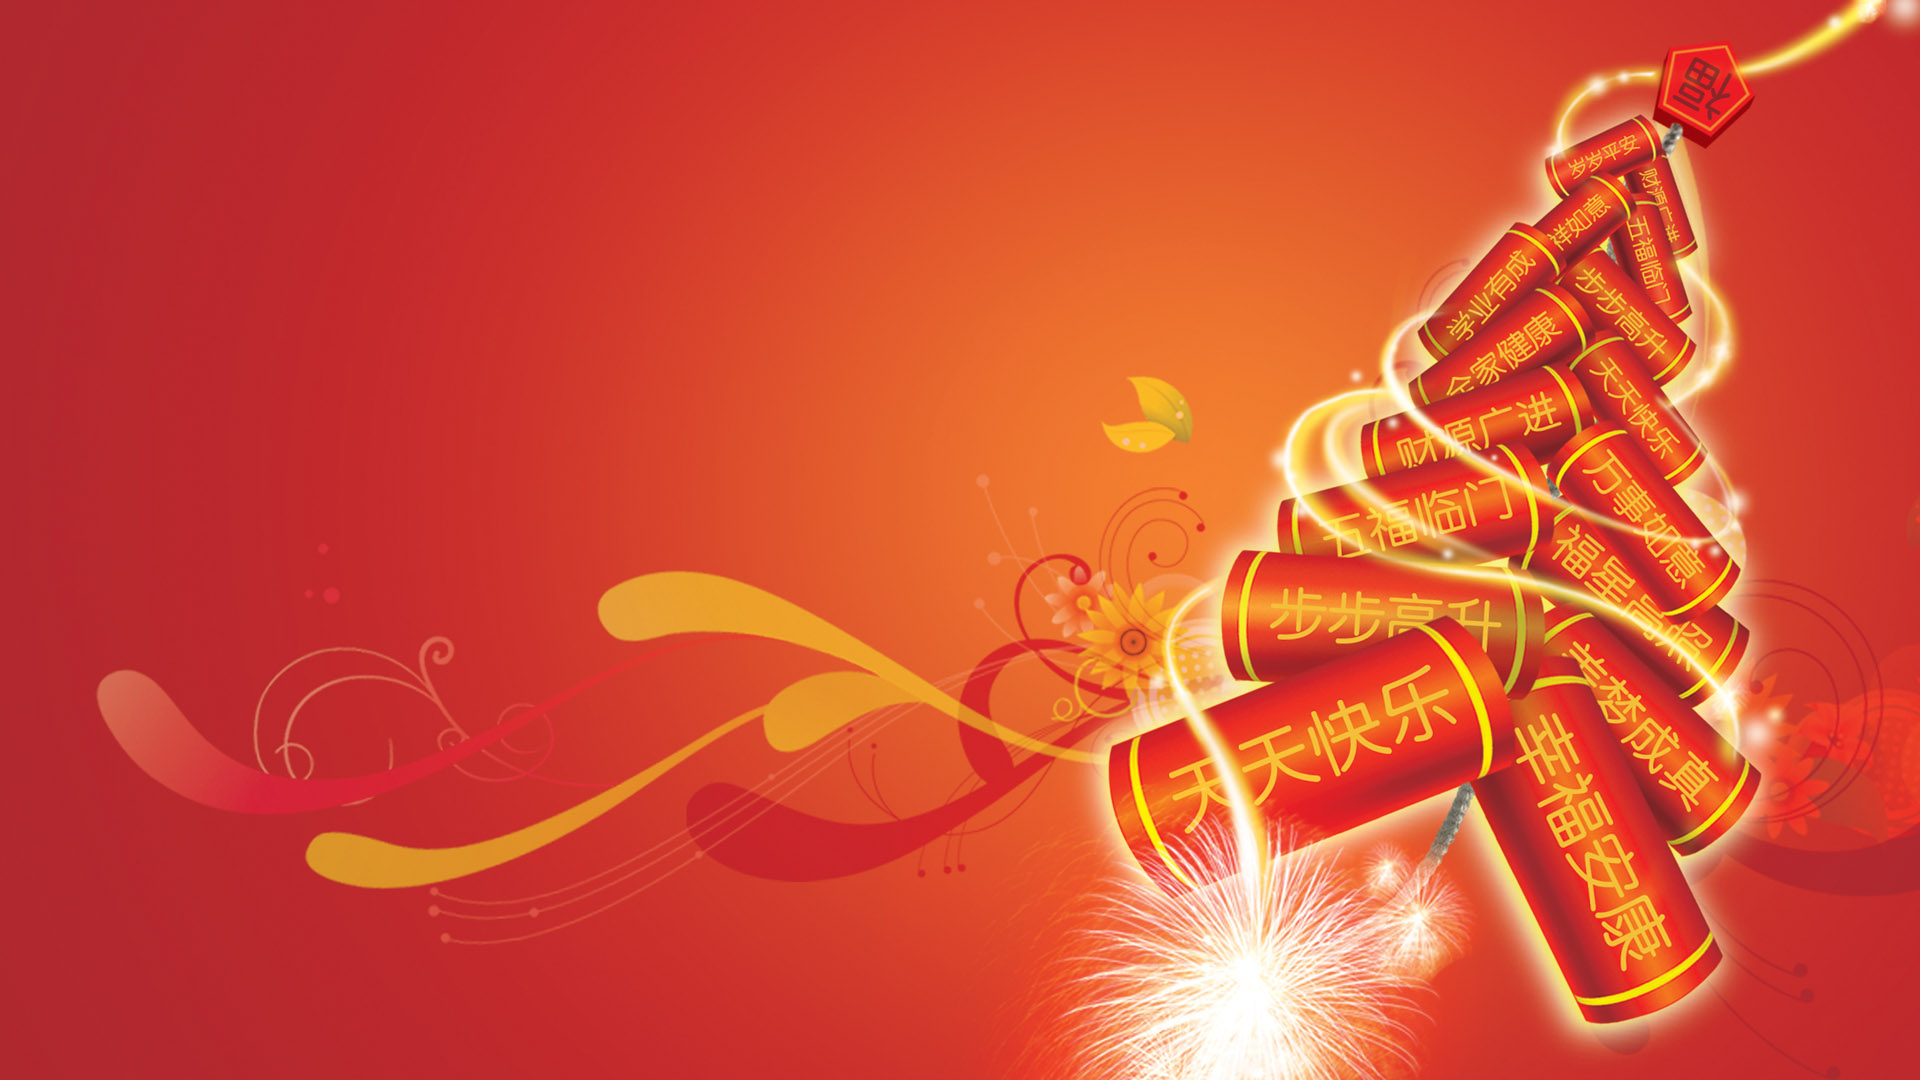 Happy Chinese New Year Gong Xi Facai Wallpaper Download